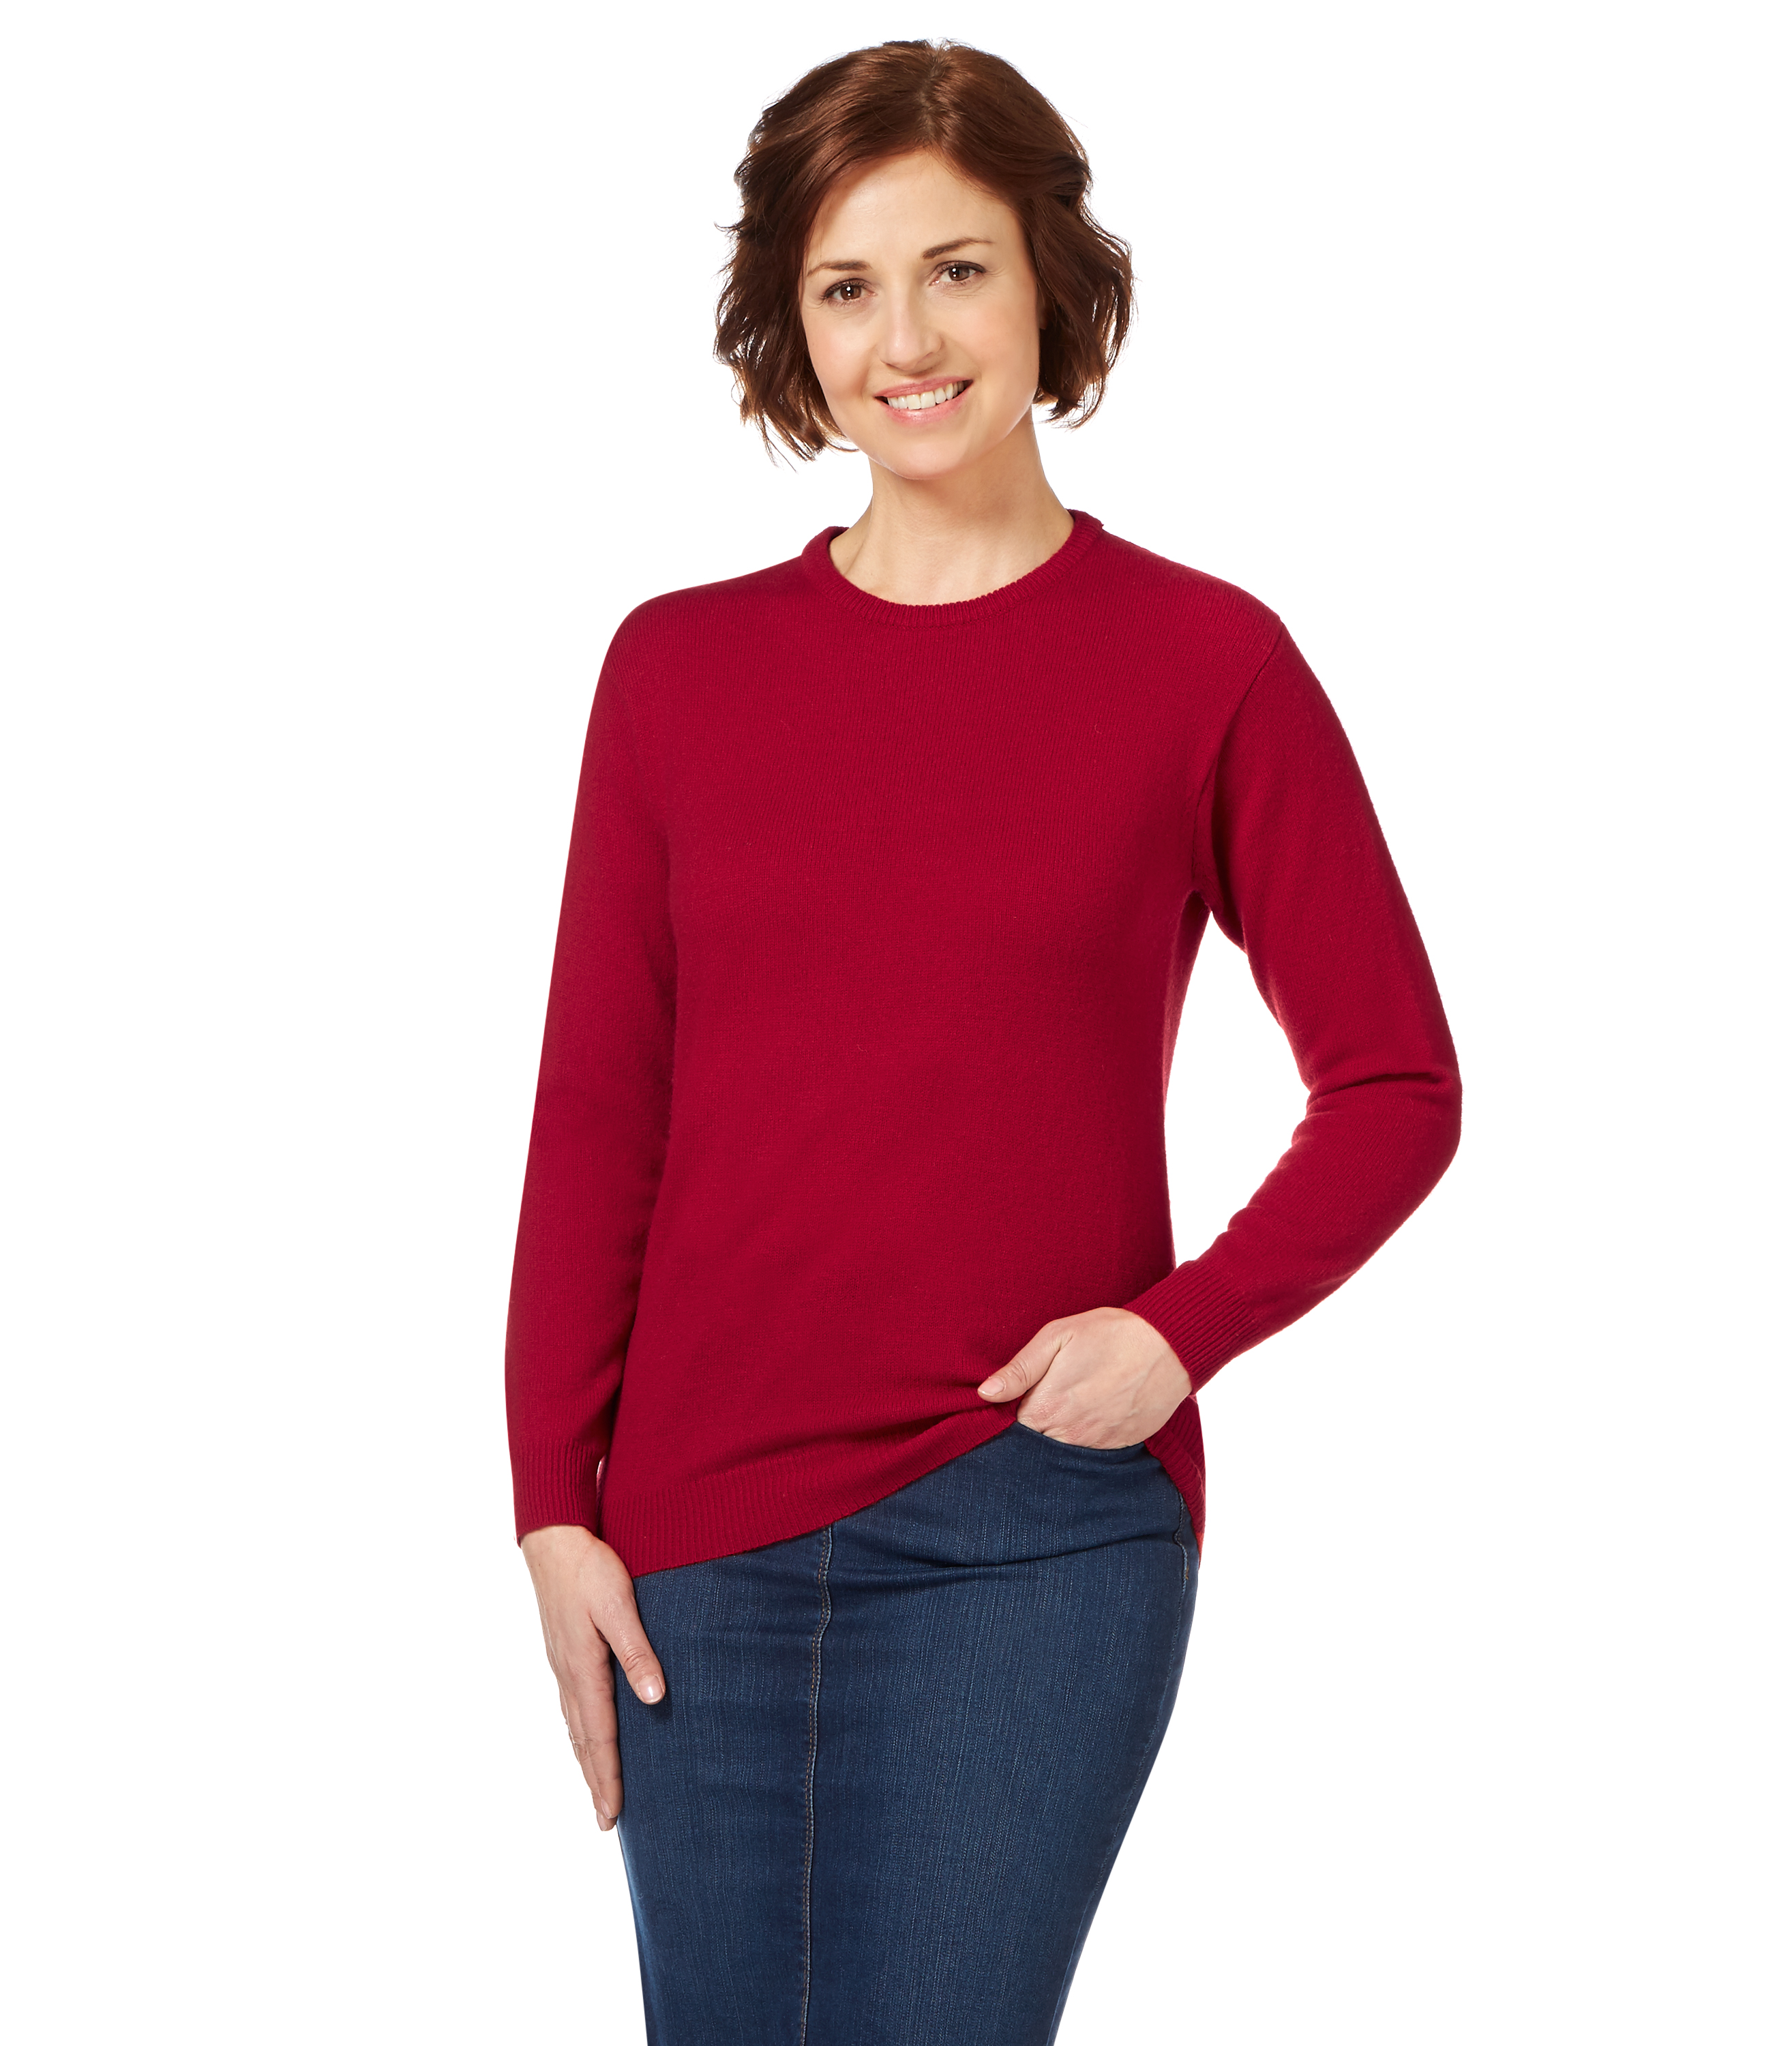 Warm Leggings Come in So Many Different Types, Take Your Pick! When you are looking for some warm leggings for the colder winter season, you get a choice from fleece lined, fur lined, plush velour, sweater leggings or ponte leggings.